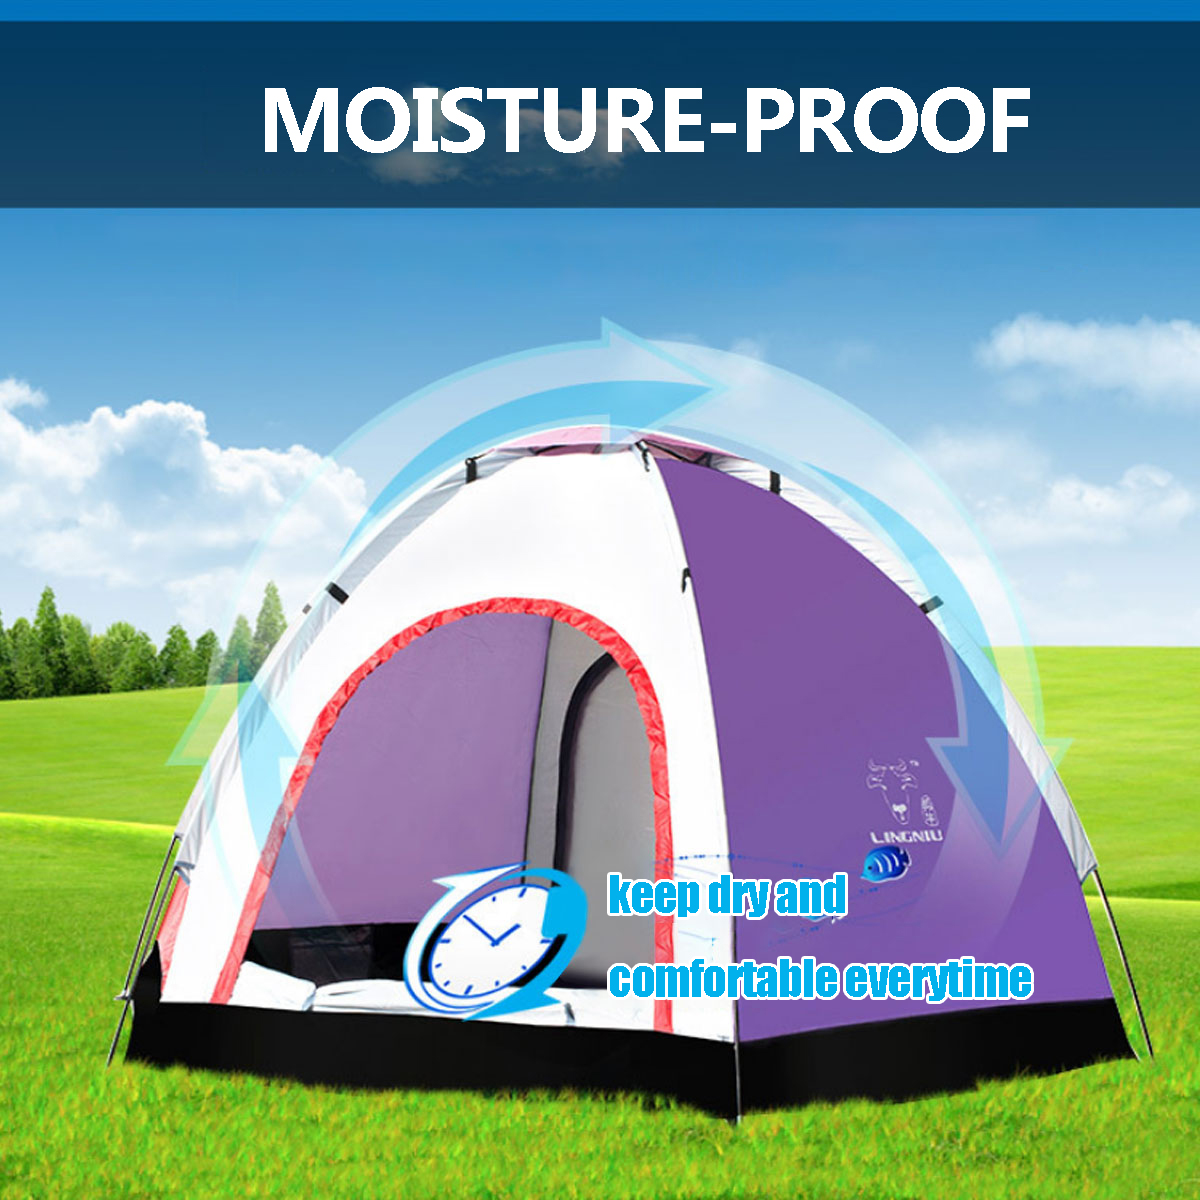 Outdoor 5-6 People Pop-Up Camping Tent Waterproof UV Proof Beach Sunshade Shelter